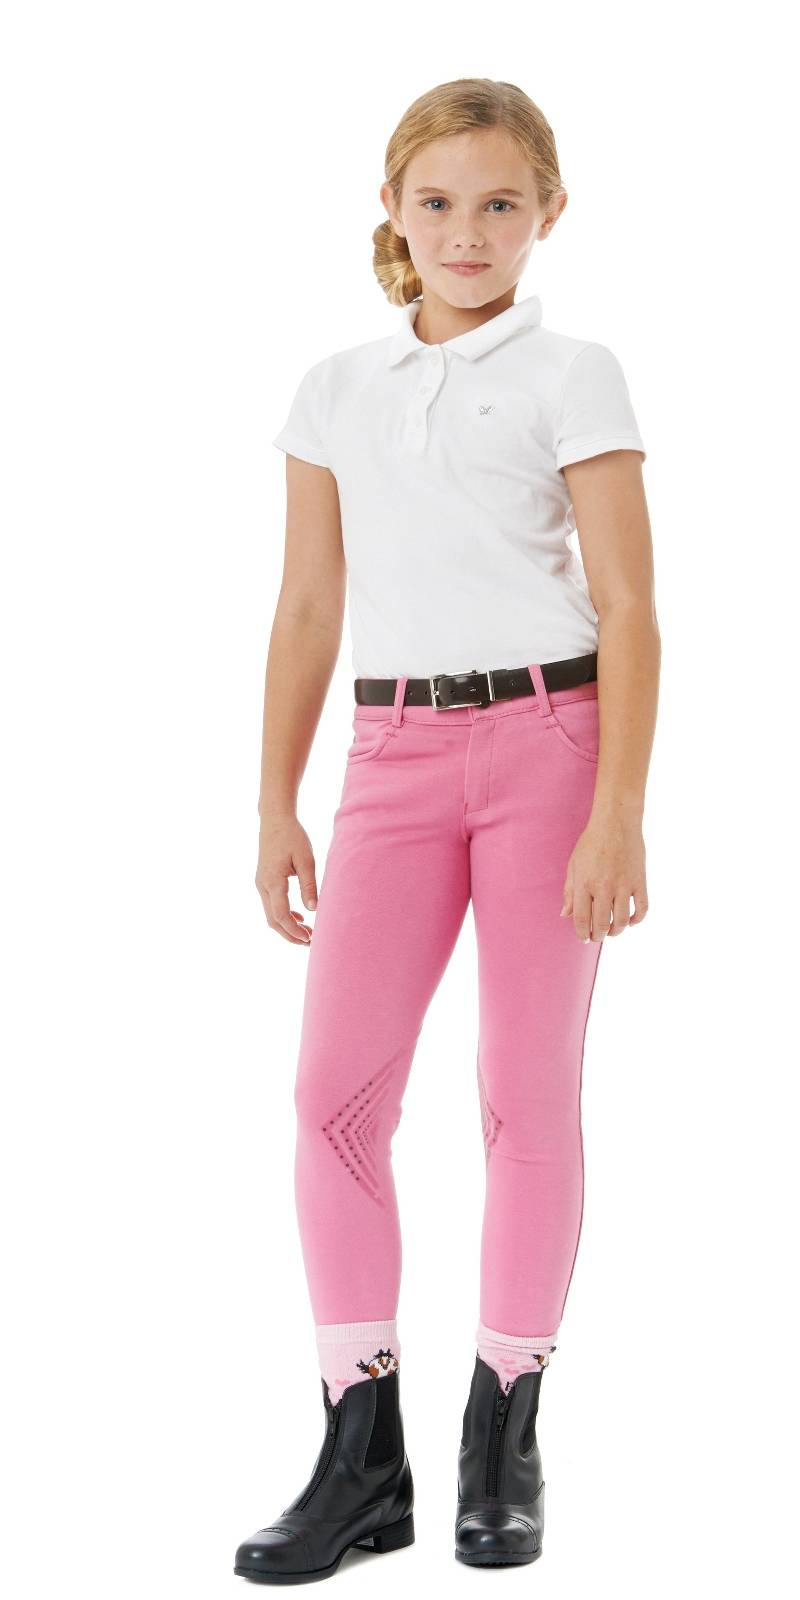 Ovation Silicone Front Zip Breeches - Kids, Knee Patch